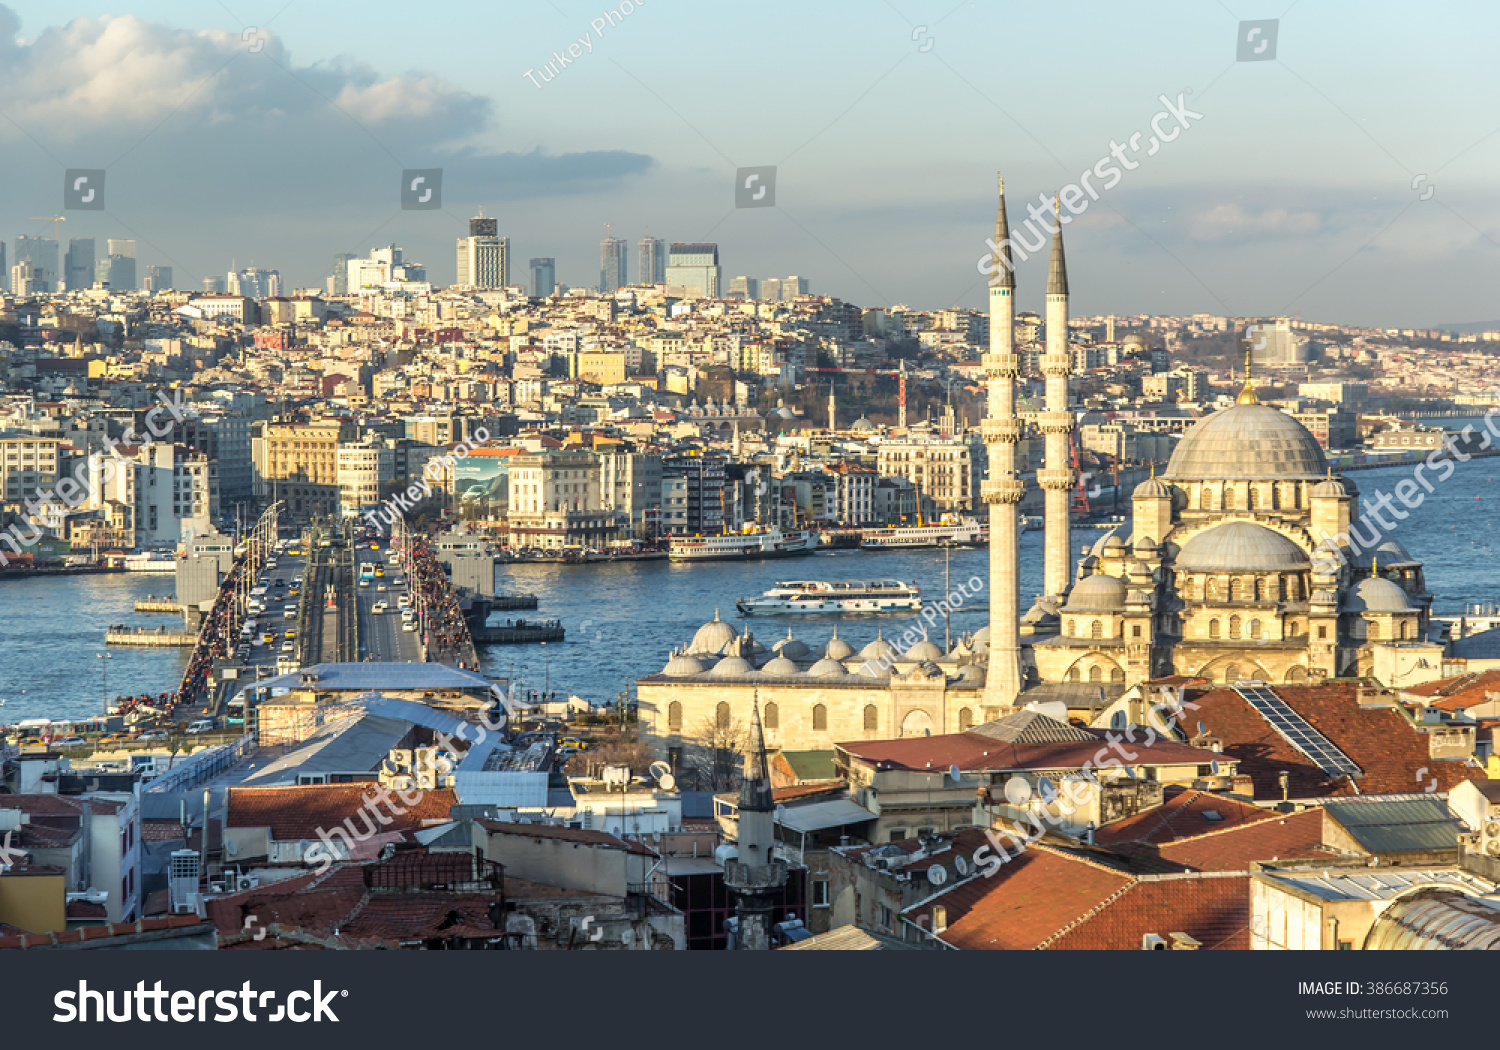 stock-photo-yeni-cami-mosque-the-new-mos